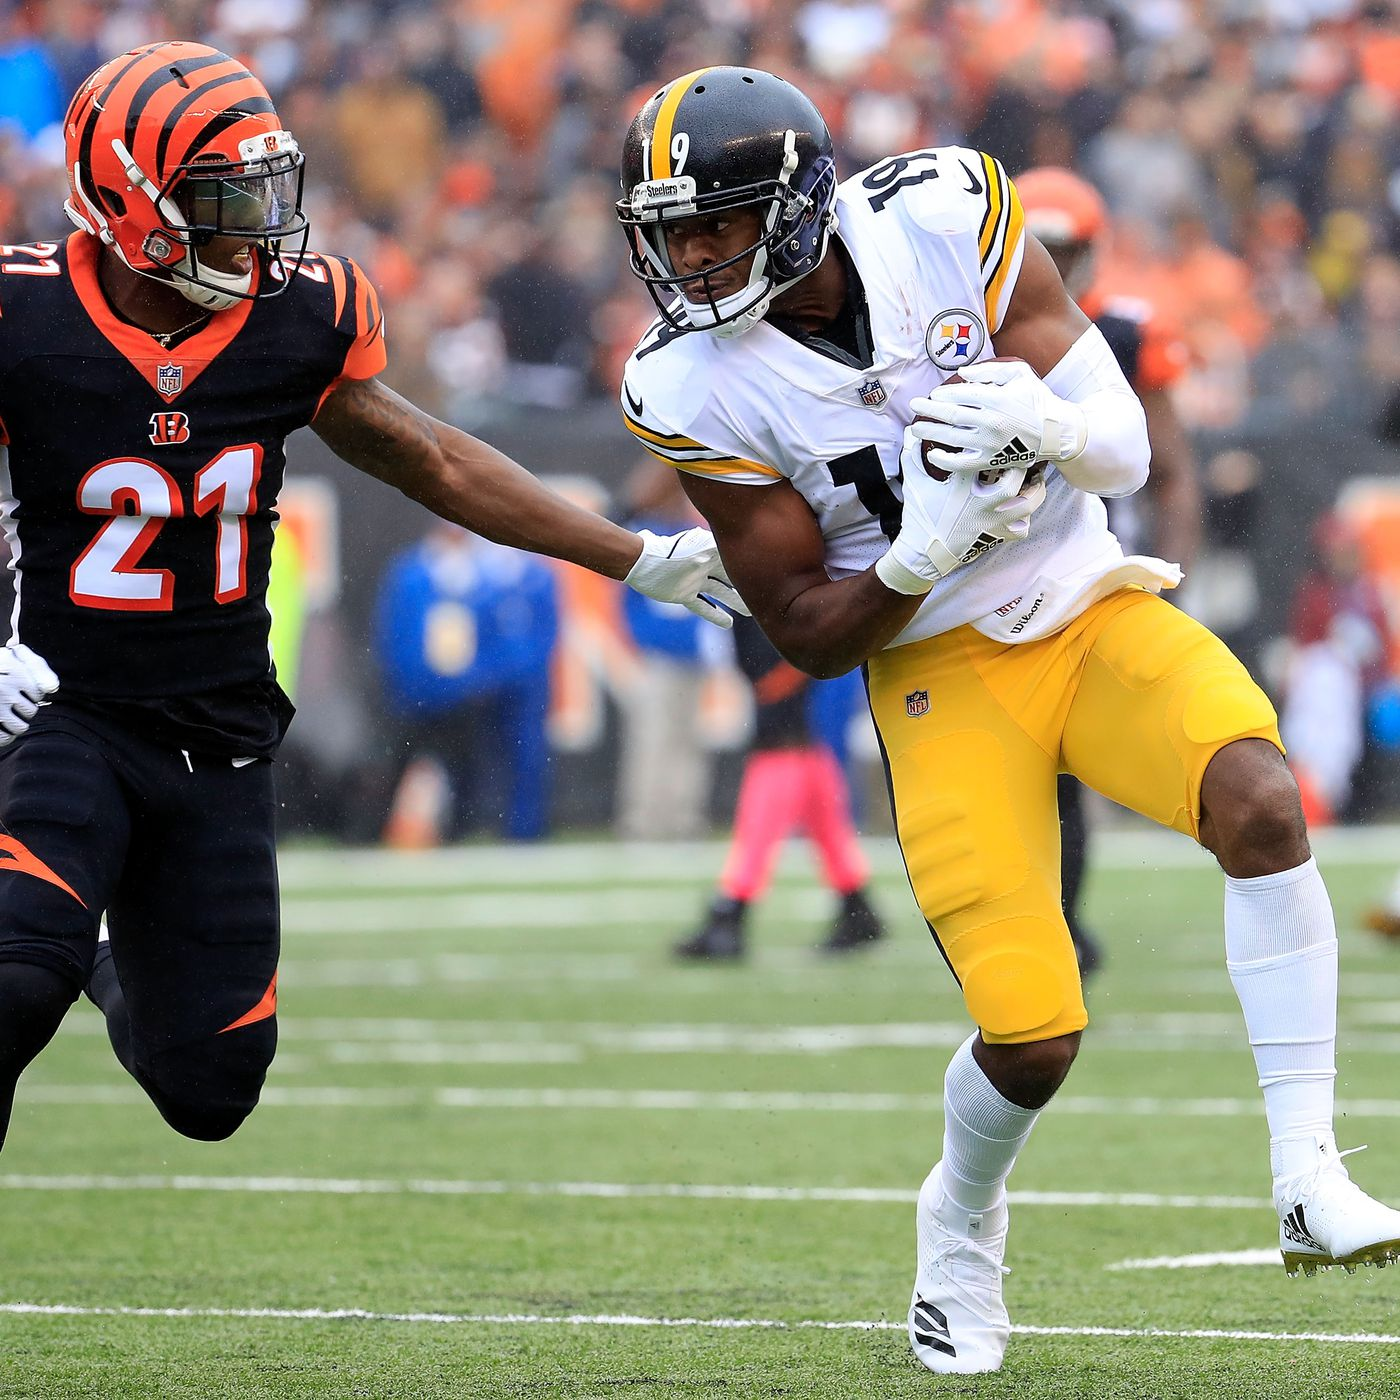 size 40 1b661 3f4f0 Bengals CB Darqueze Dennard ruled out vs. Steelers, Vontaze ...